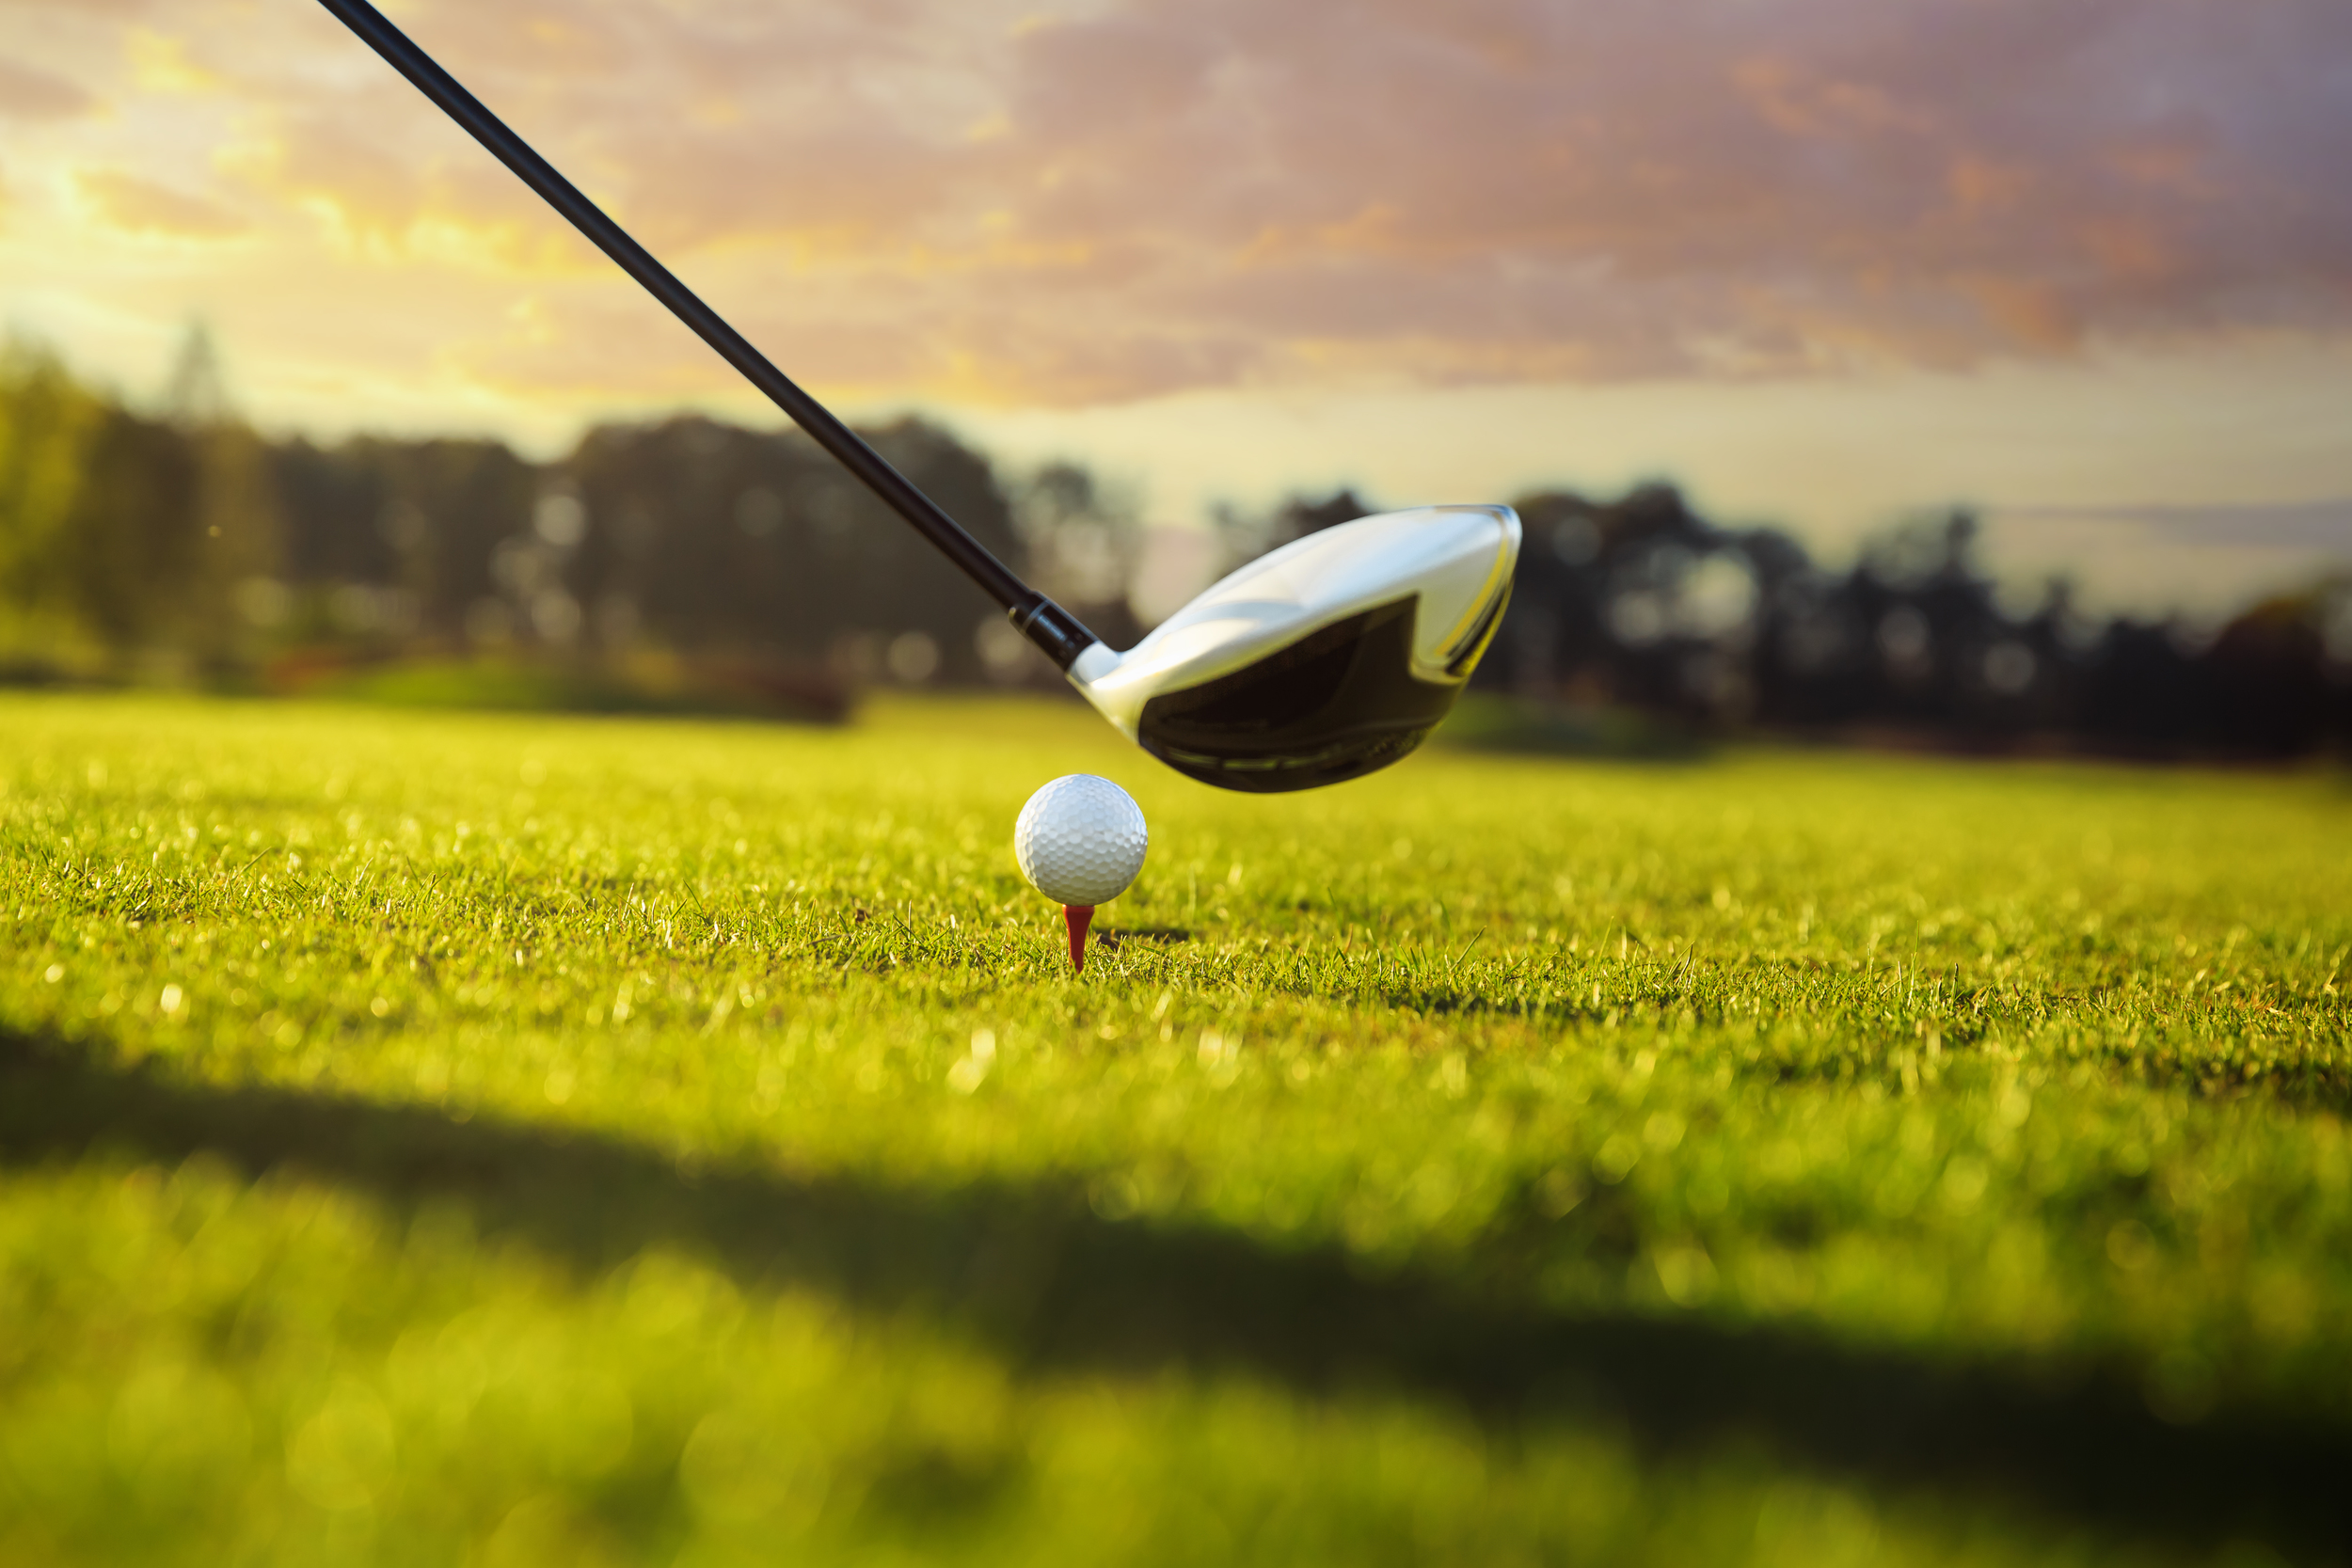 Get the right golf clubs at Limitless Golf Chesham